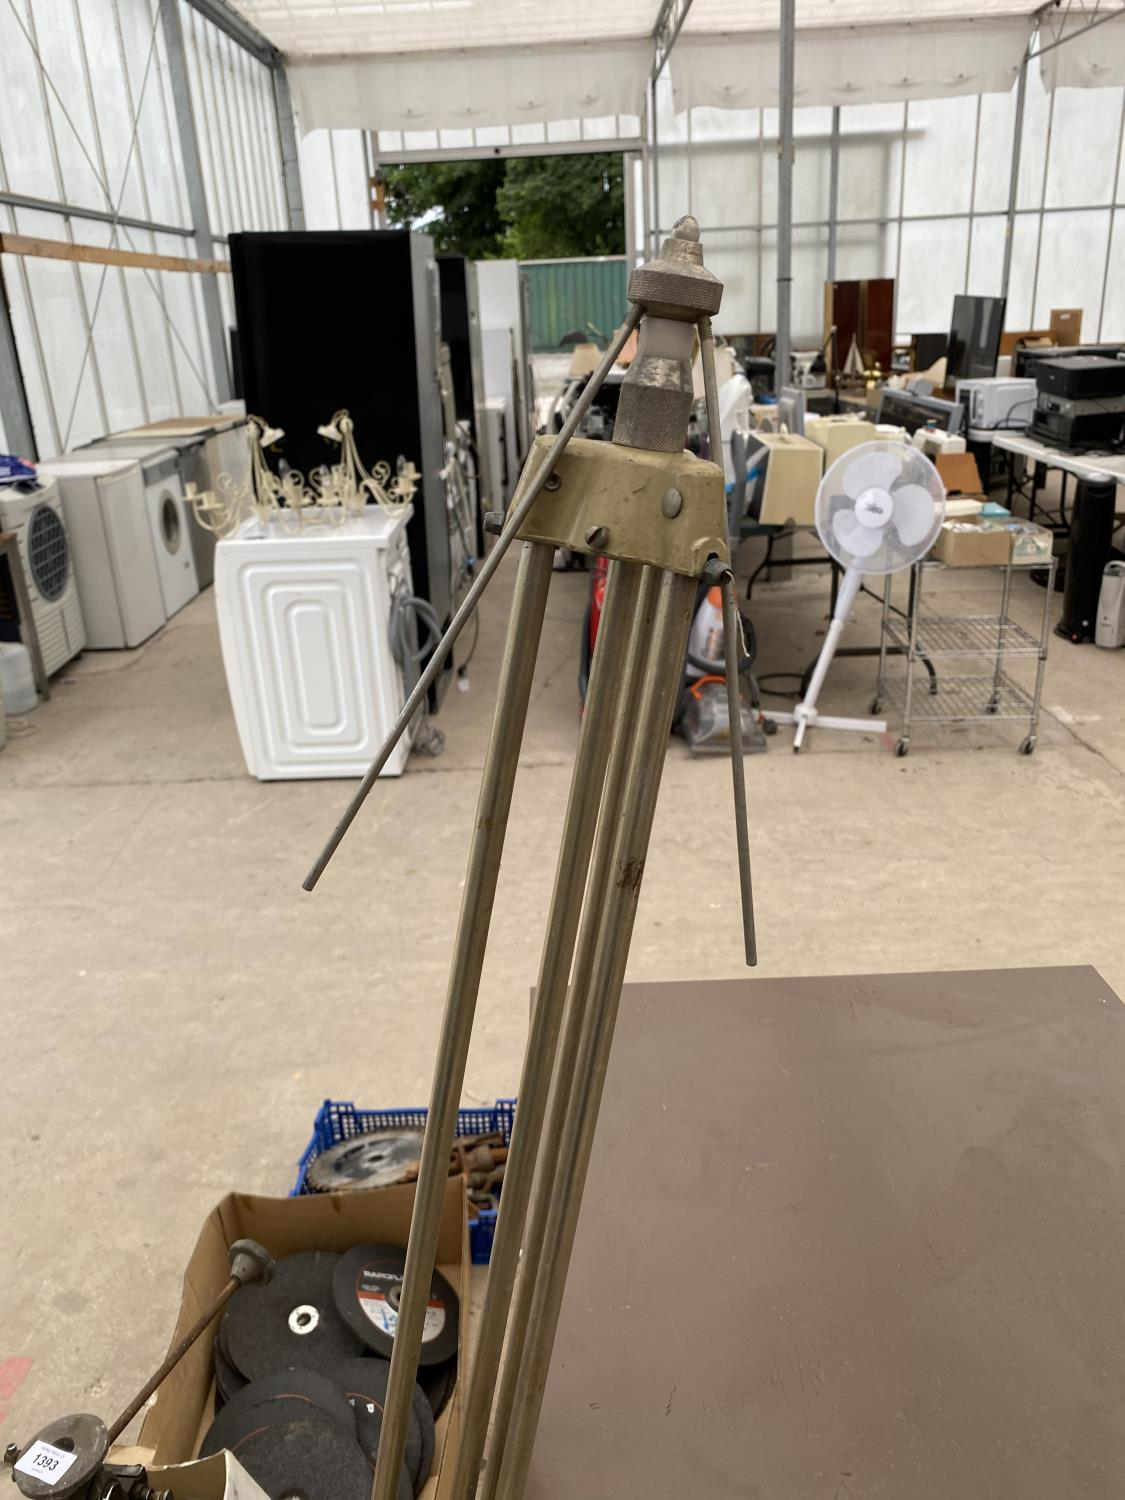 A VINTAGE CAMERA TRIPOD AND A FURTHER TRIPOD STAND - Image 4 of 4